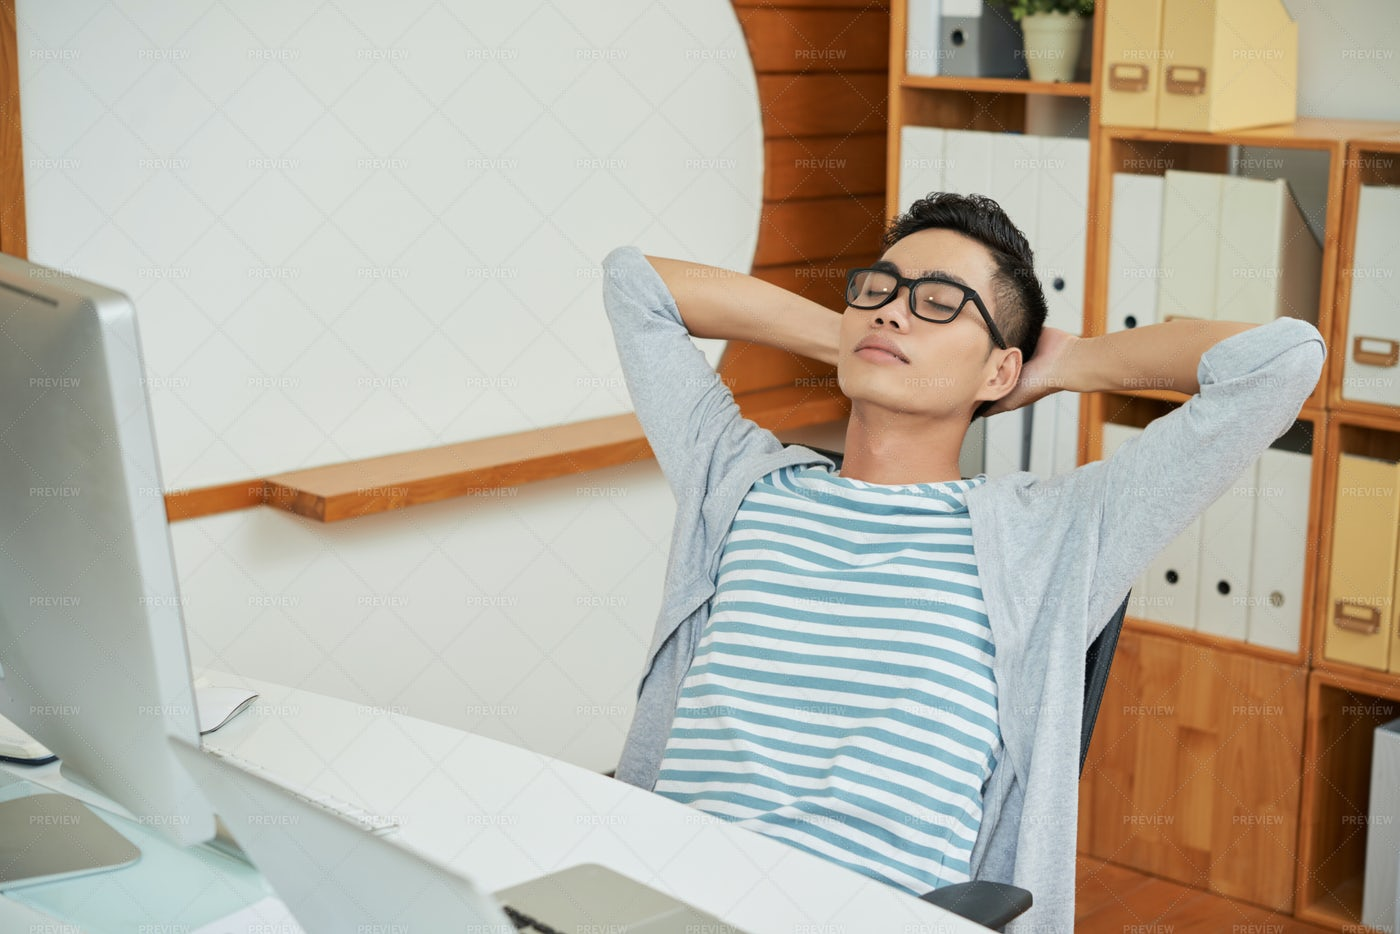 Resting Office Worker In Chair: Stock Photos